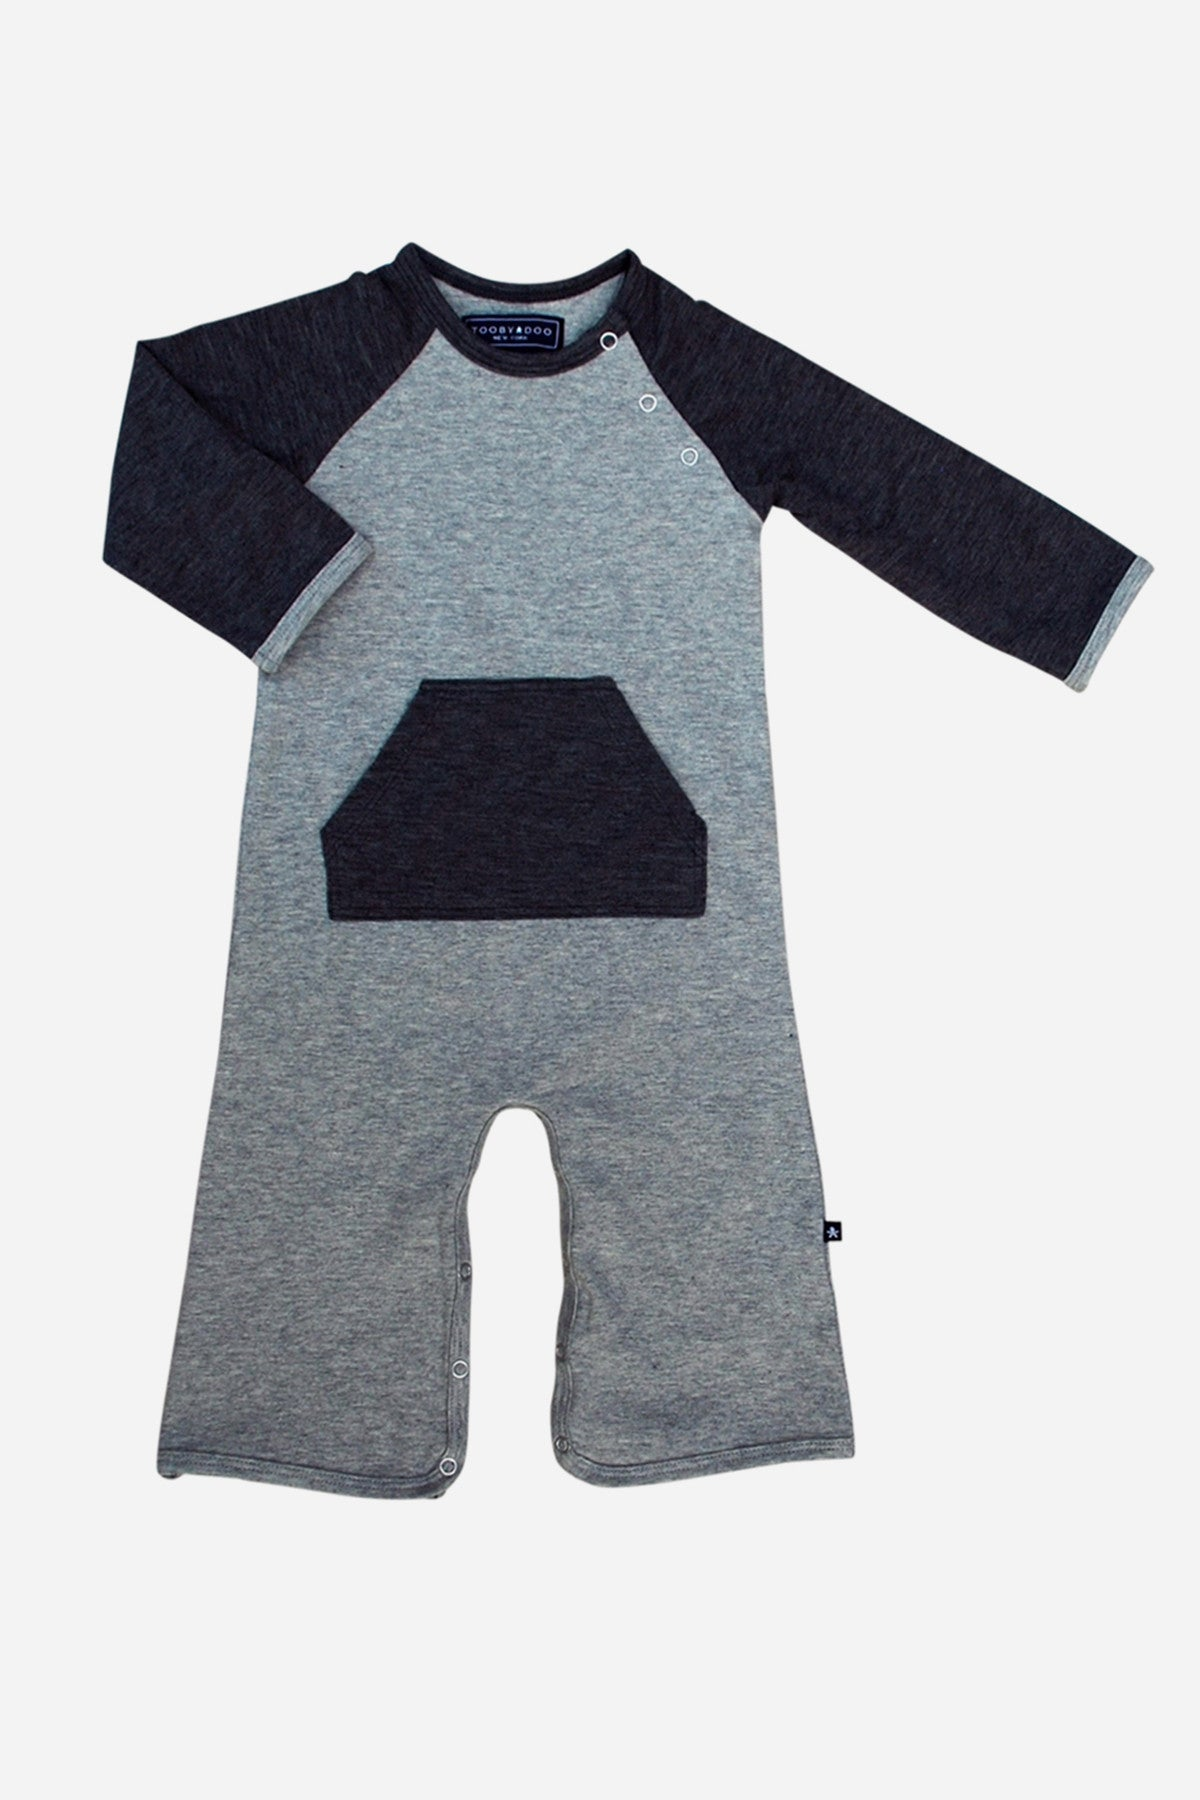 Toobydoo Baseball Baby Boys Jumpsuit (Size 18/24M left)